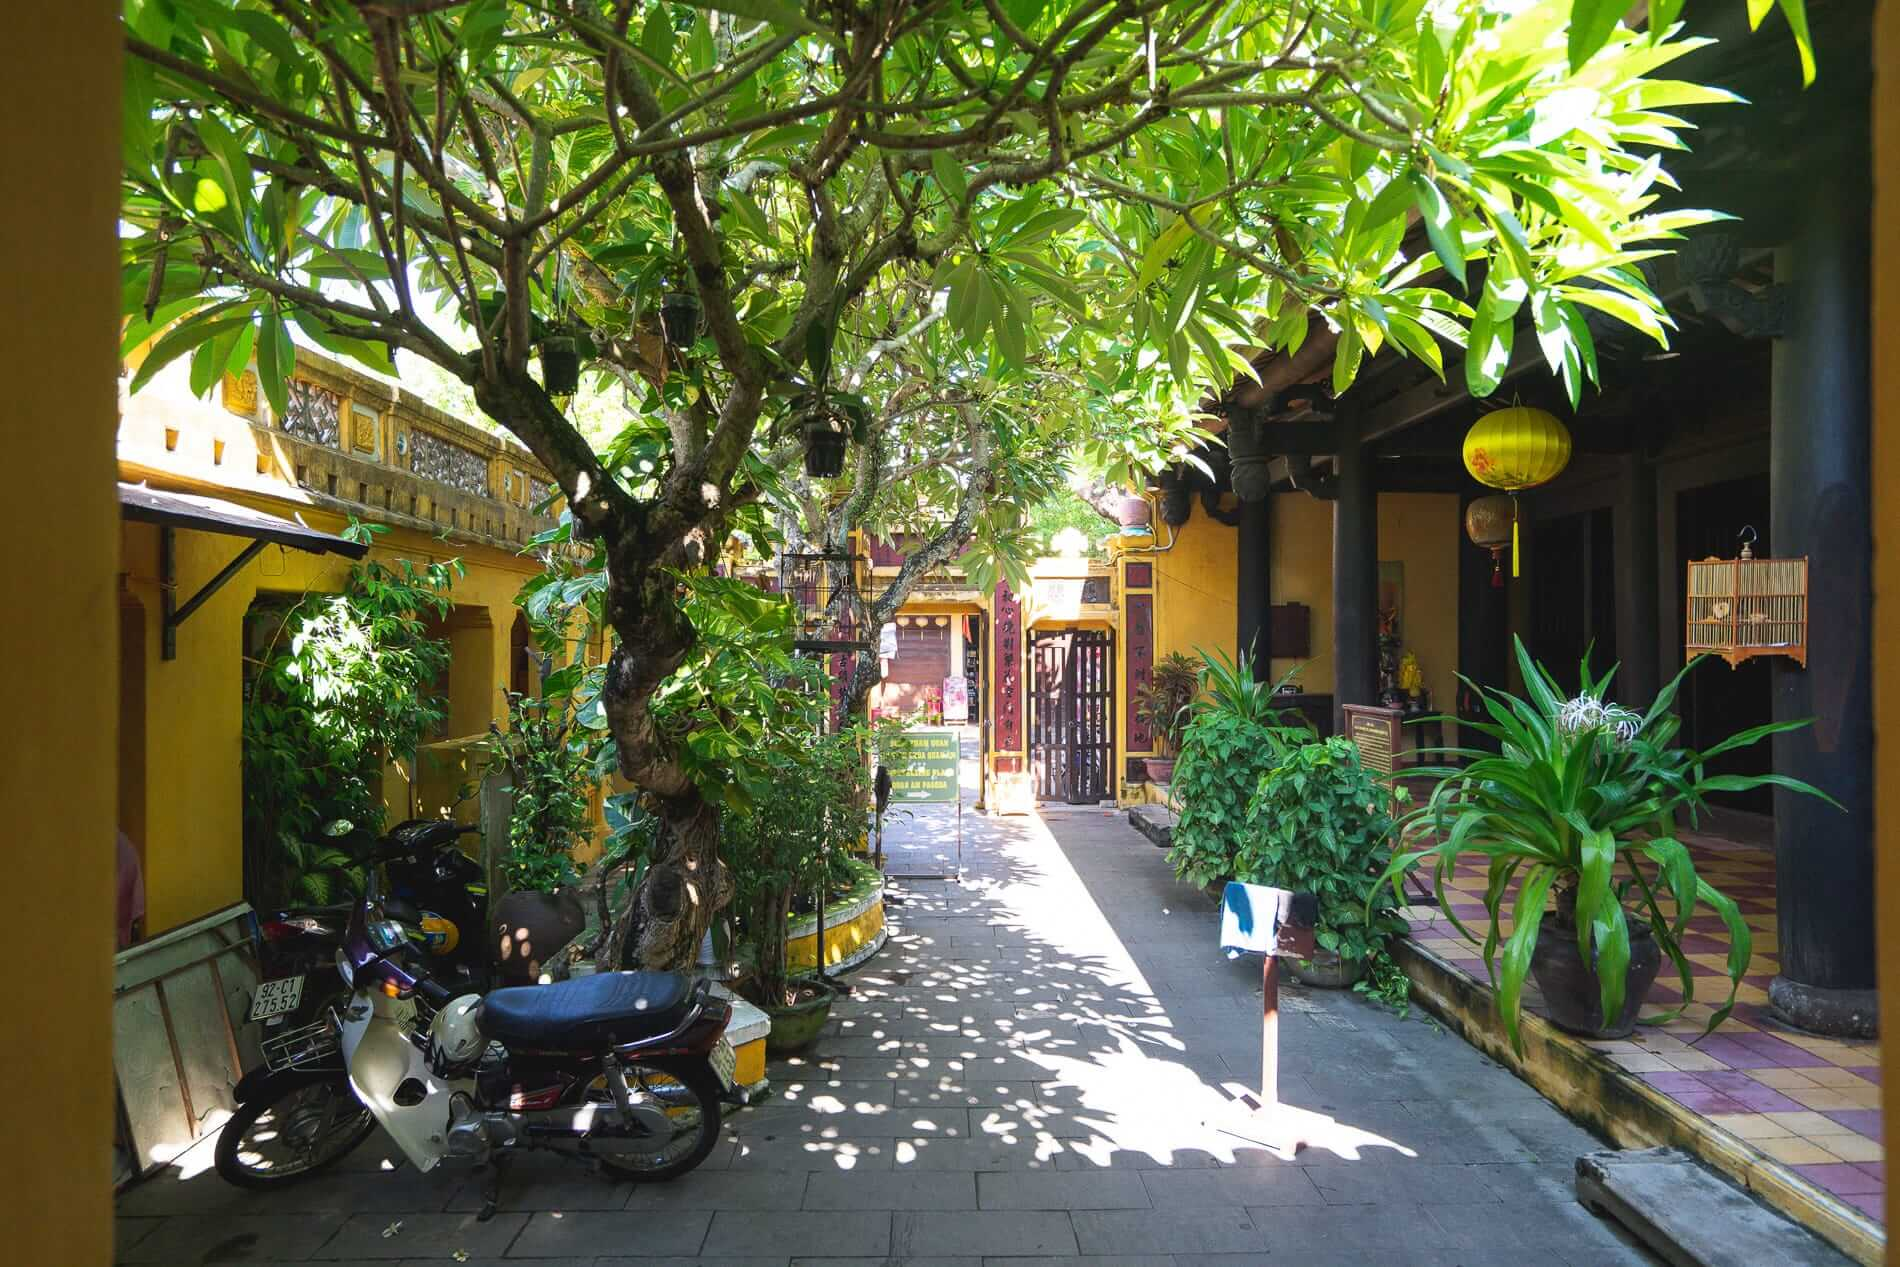 Quan Am Pagoda - Hoi An Ancient Town